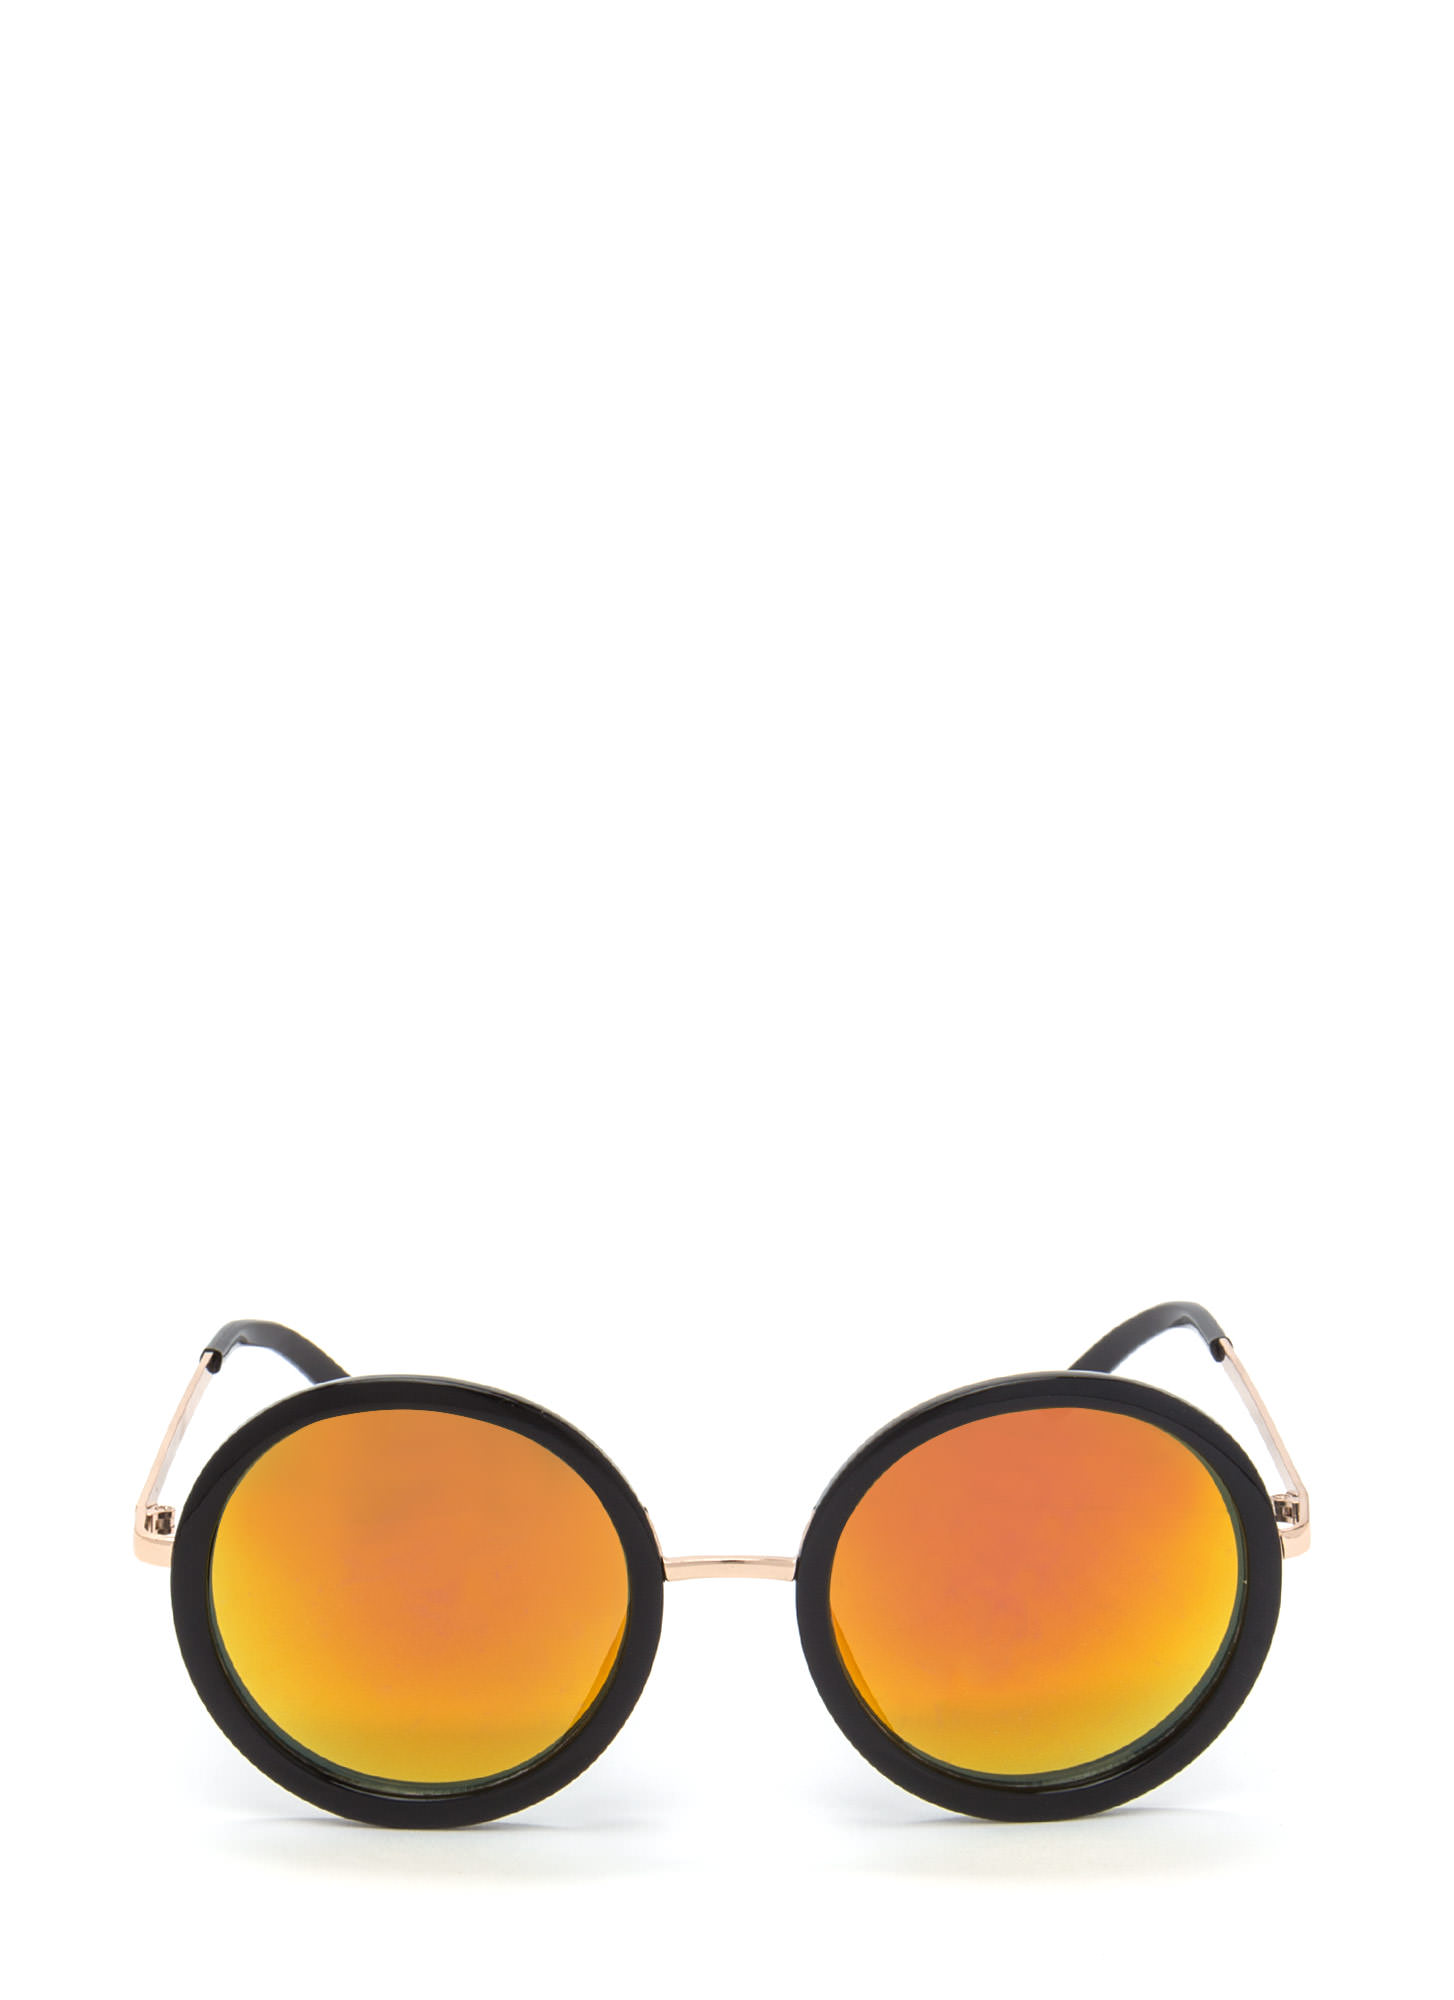 Round Of Applause Sunglasses ORANGEBLACK